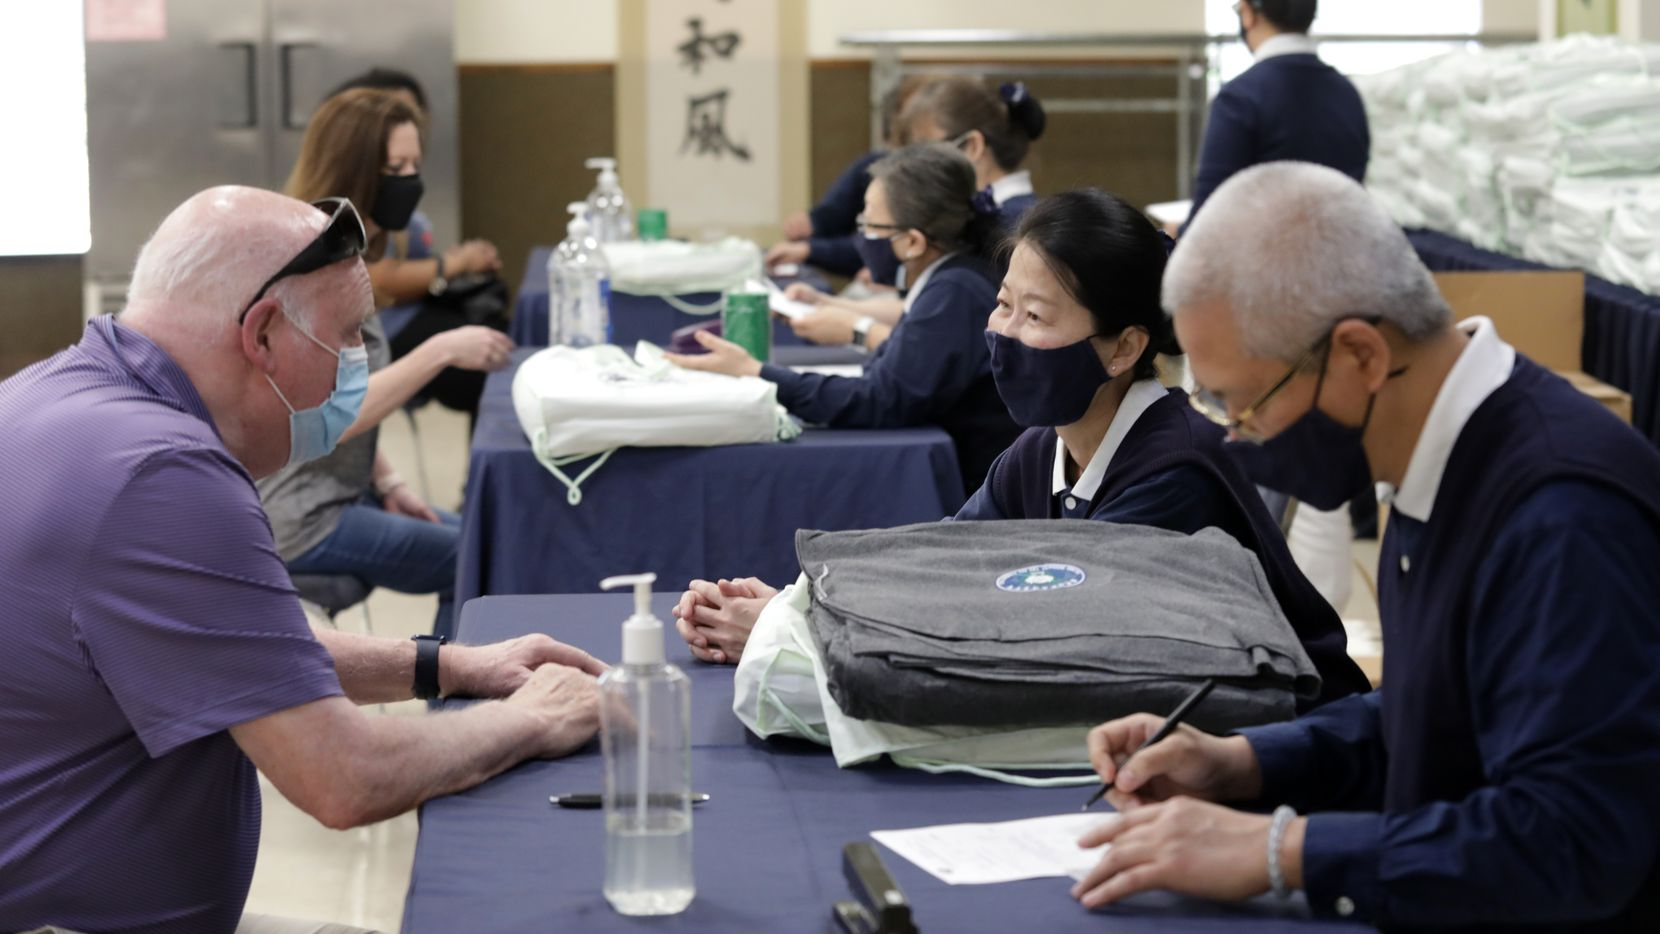 Families displaced in a recent Addison fire receive help at the Tzu Chi foundation in Richardson, TX, on Apr. 25, 2021. (Jason Janik/Special Contributor)